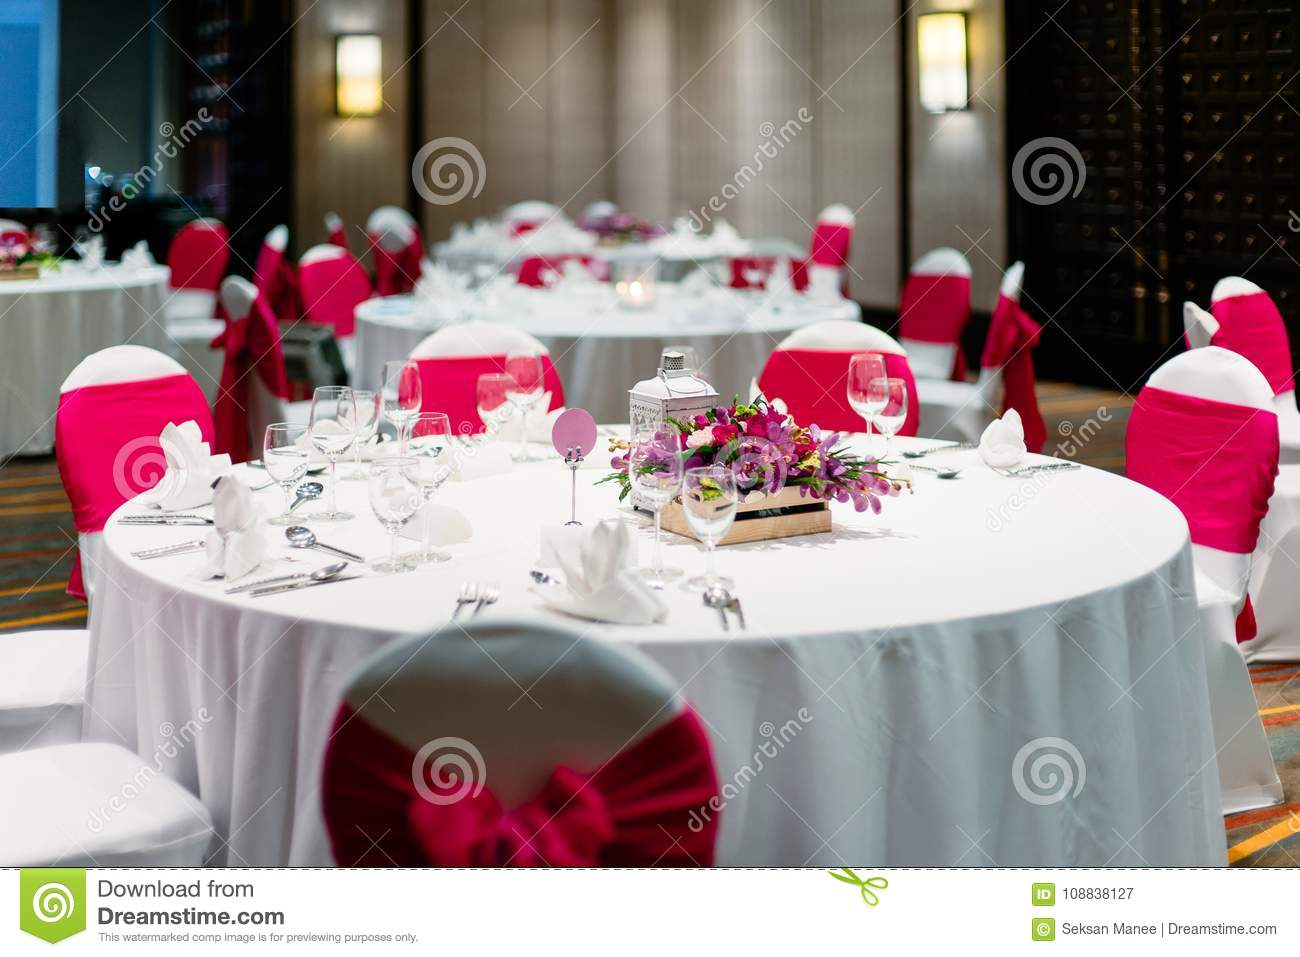 The Wedding Reception Dinner With White And Red Theme, The Candle, Dinner  Room.